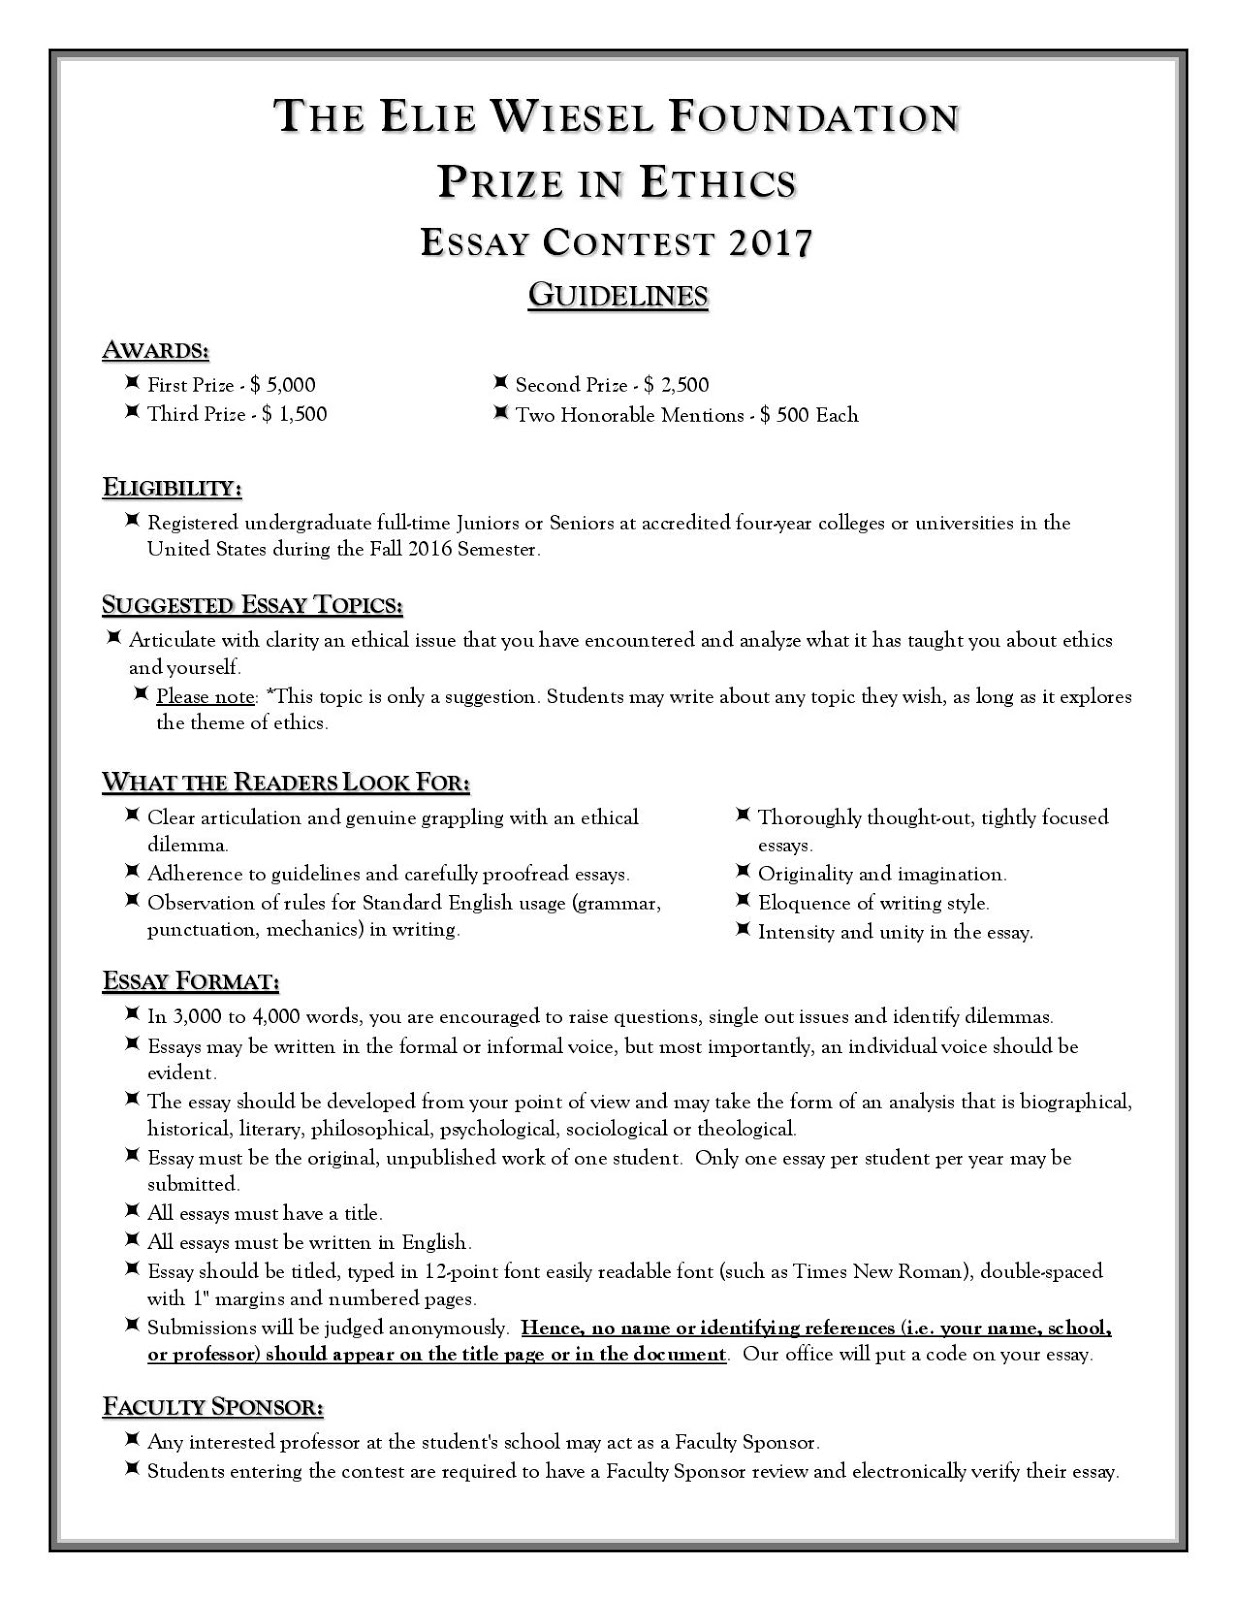 politics and government university of puget sound elie wiesel foundation prize in ethics essay contest 2017 deadline 12 19